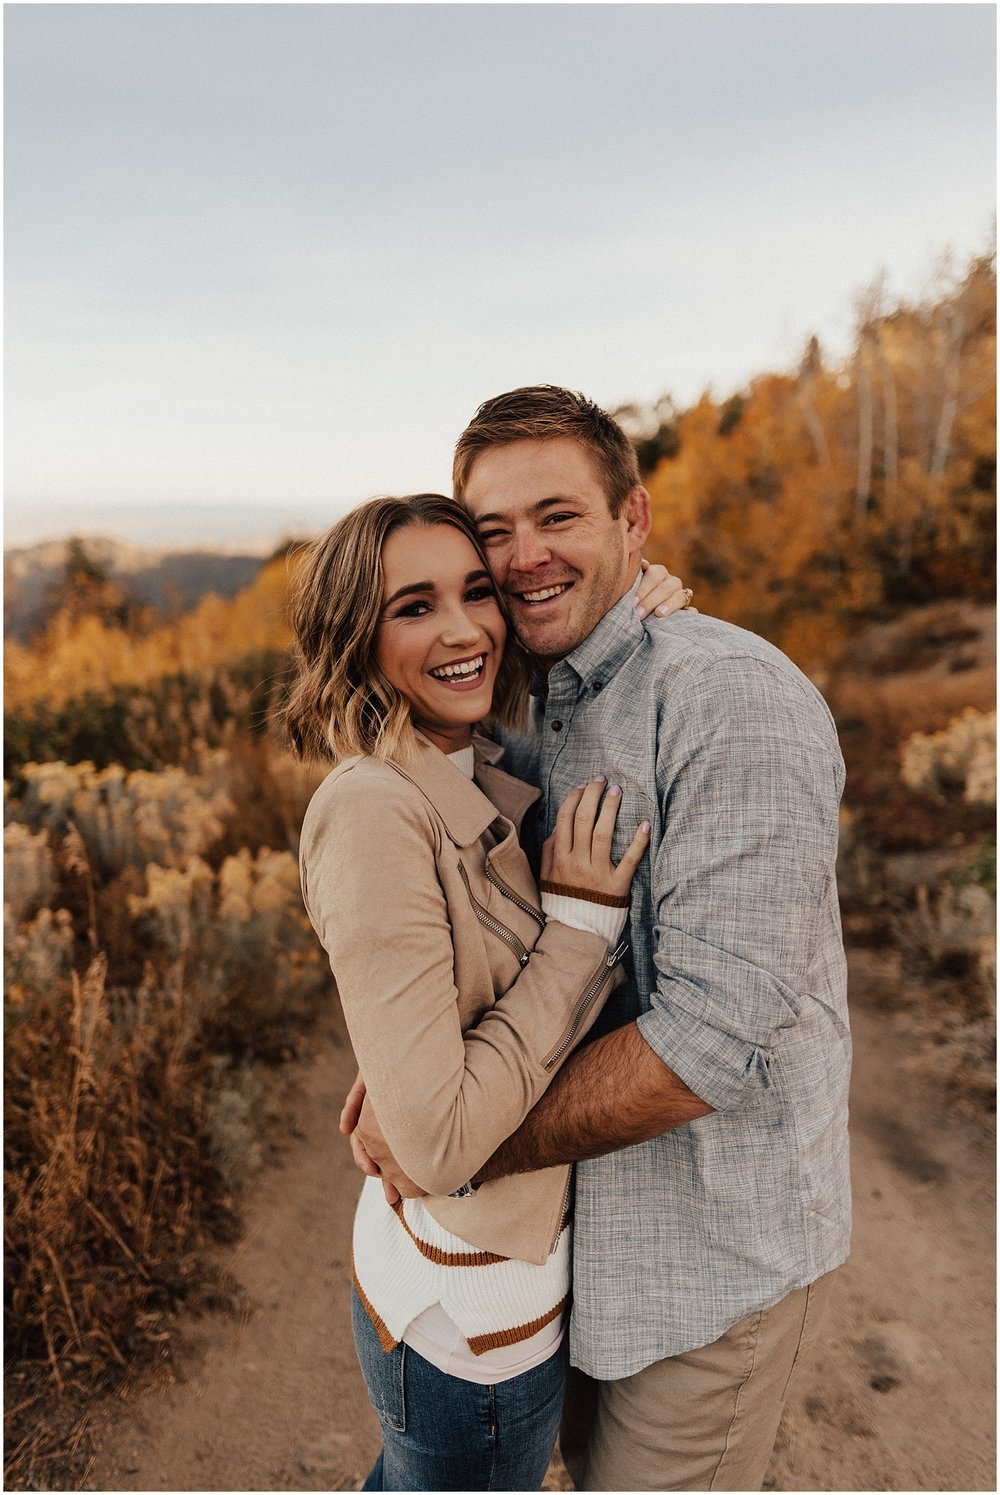 sunrise-mountain-engagement-session-boise-idaho1.jpg